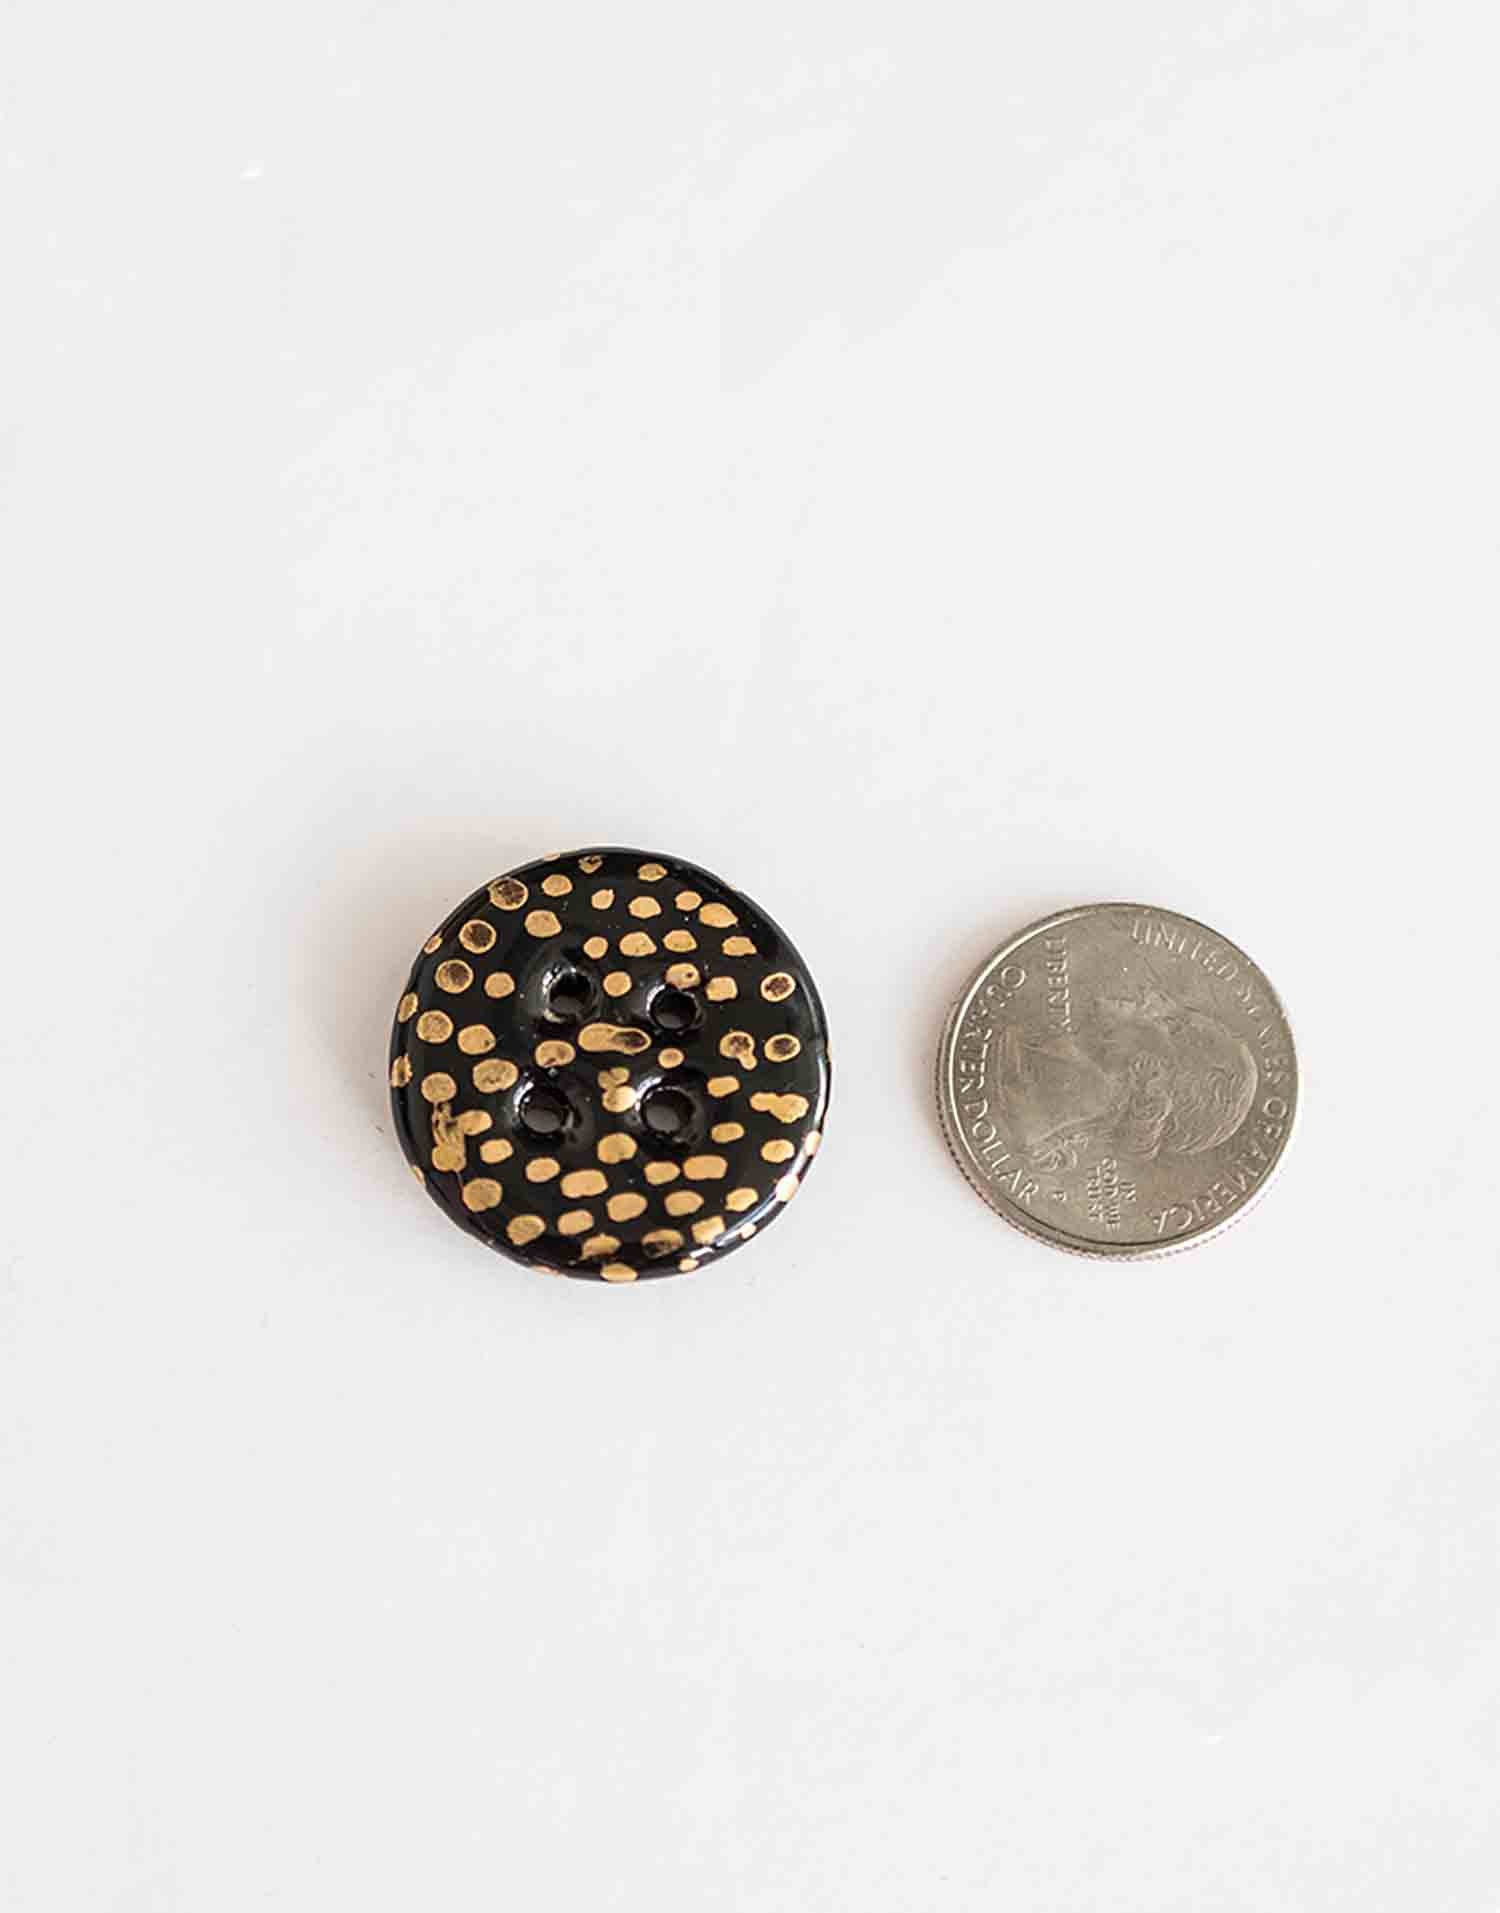 Handmade ceramic buttons: Black & Gold Medium